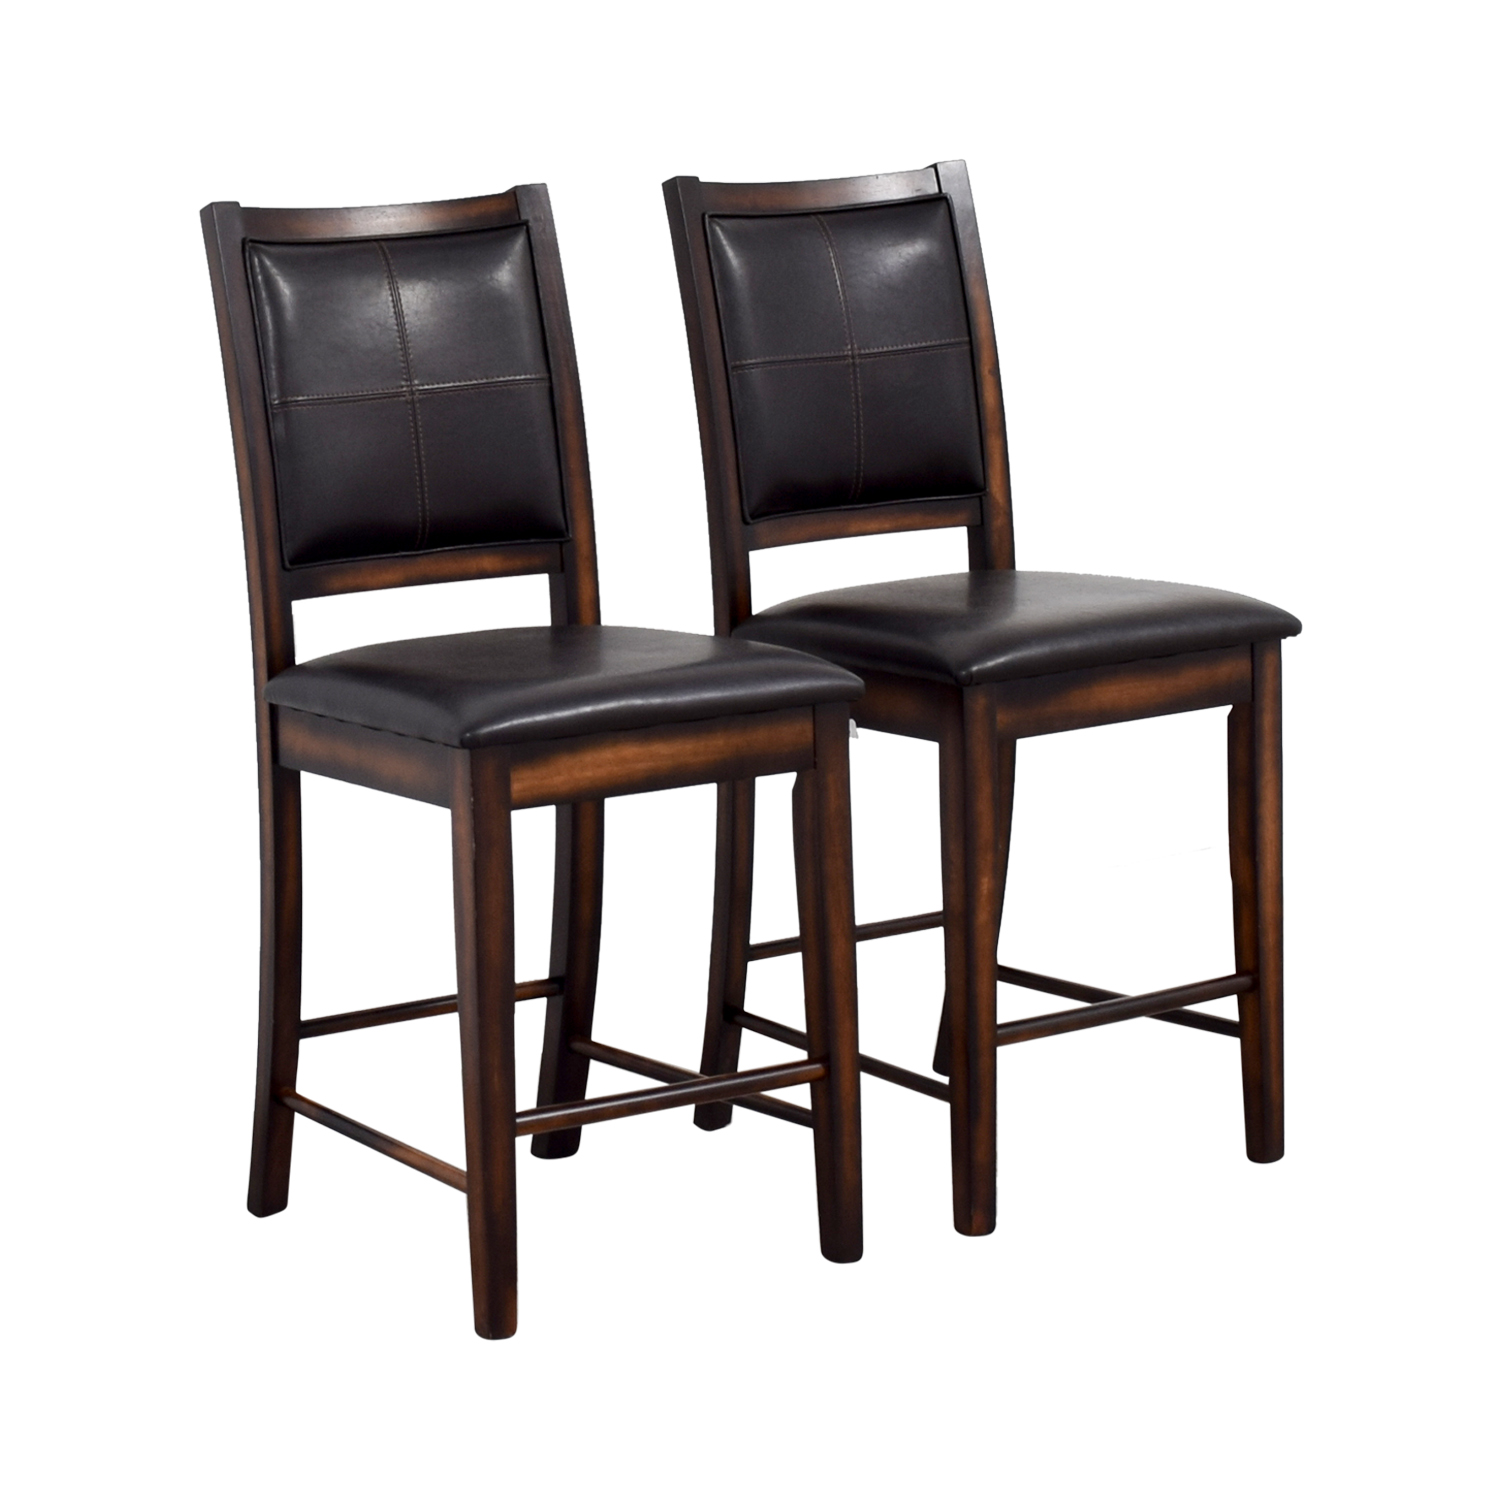 90 off brown leather counter stools chairs. Black Bedroom Furniture Sets. Home Design Ideas